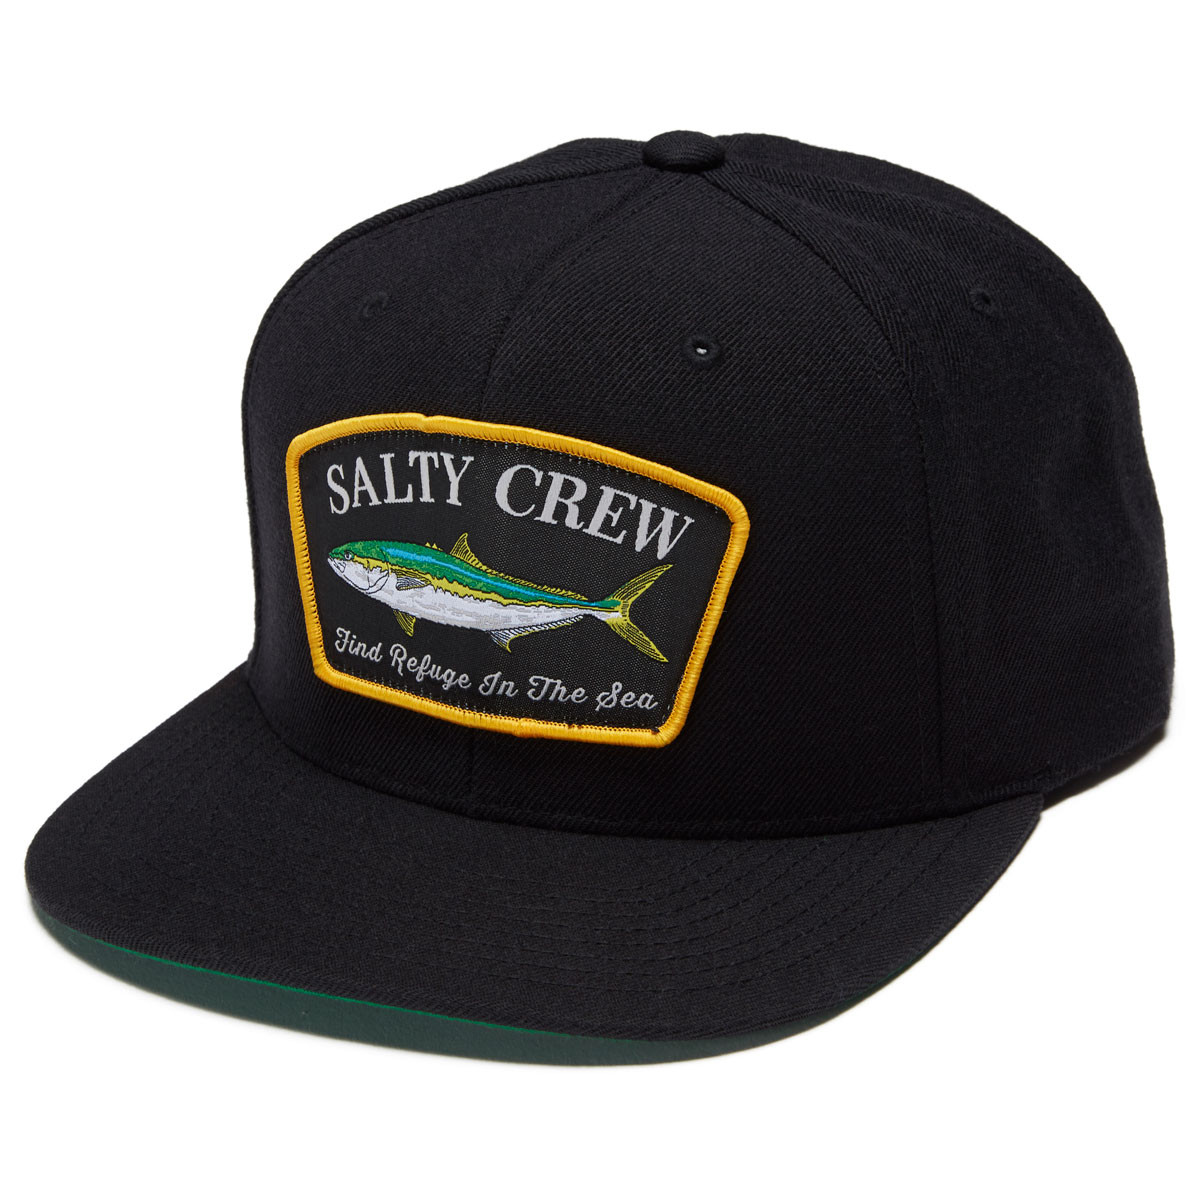 outlet store 34e32 29b02 ... get salty crew mossback 6 panel hat black a7c8e fb869